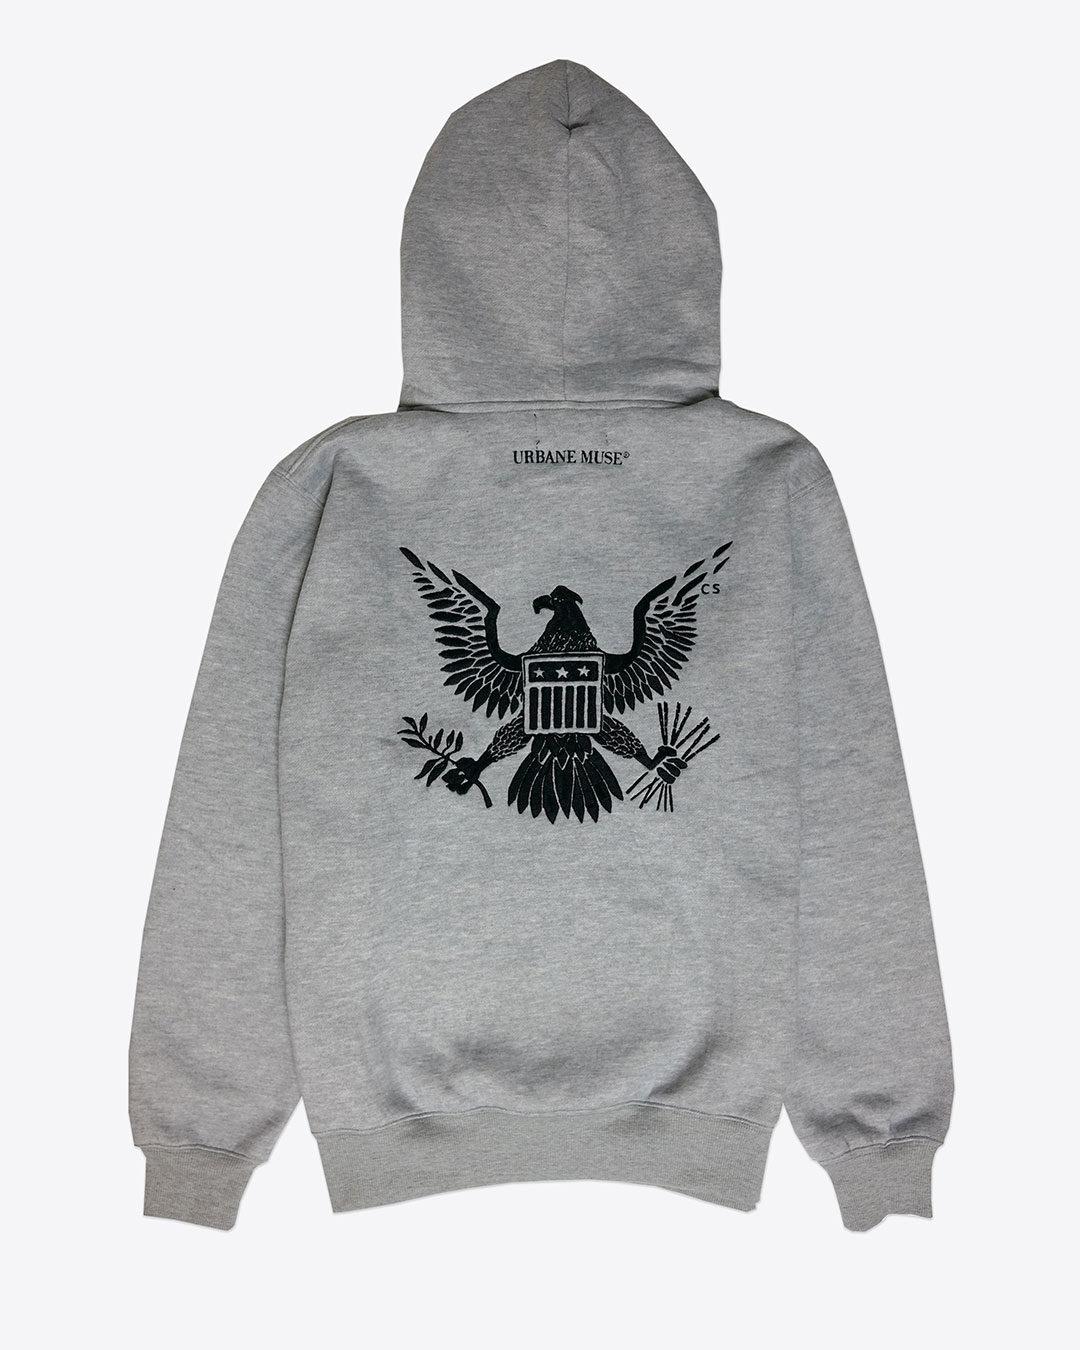 Photo-2c-URBANE-MUSE-CHRIS-SMITH-Eagle-Hoodie-Product-Photos